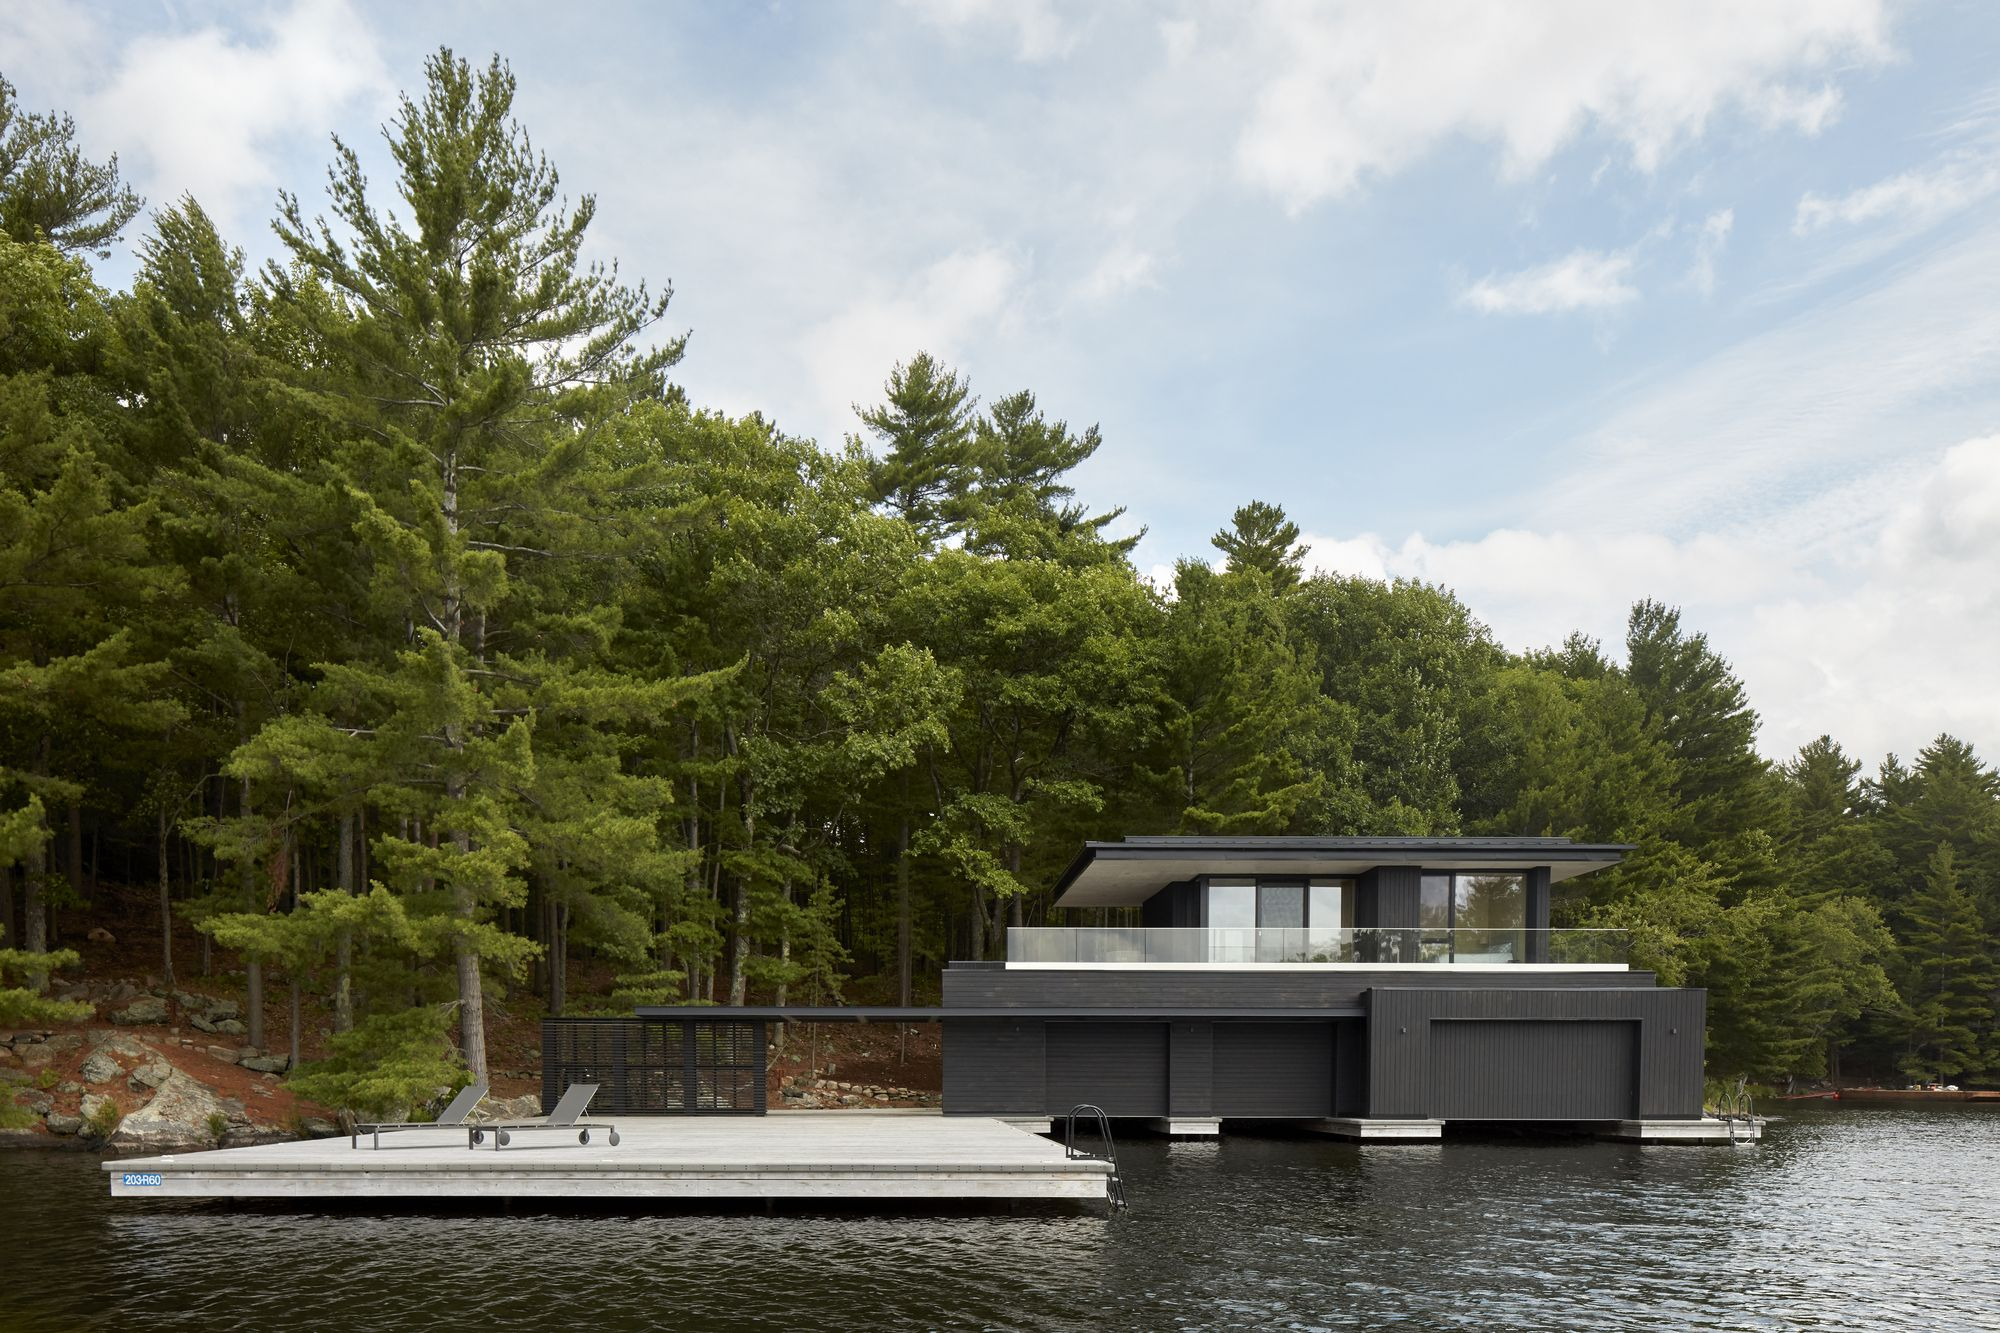 Muskoka Boathouse Akb Architects Architektur